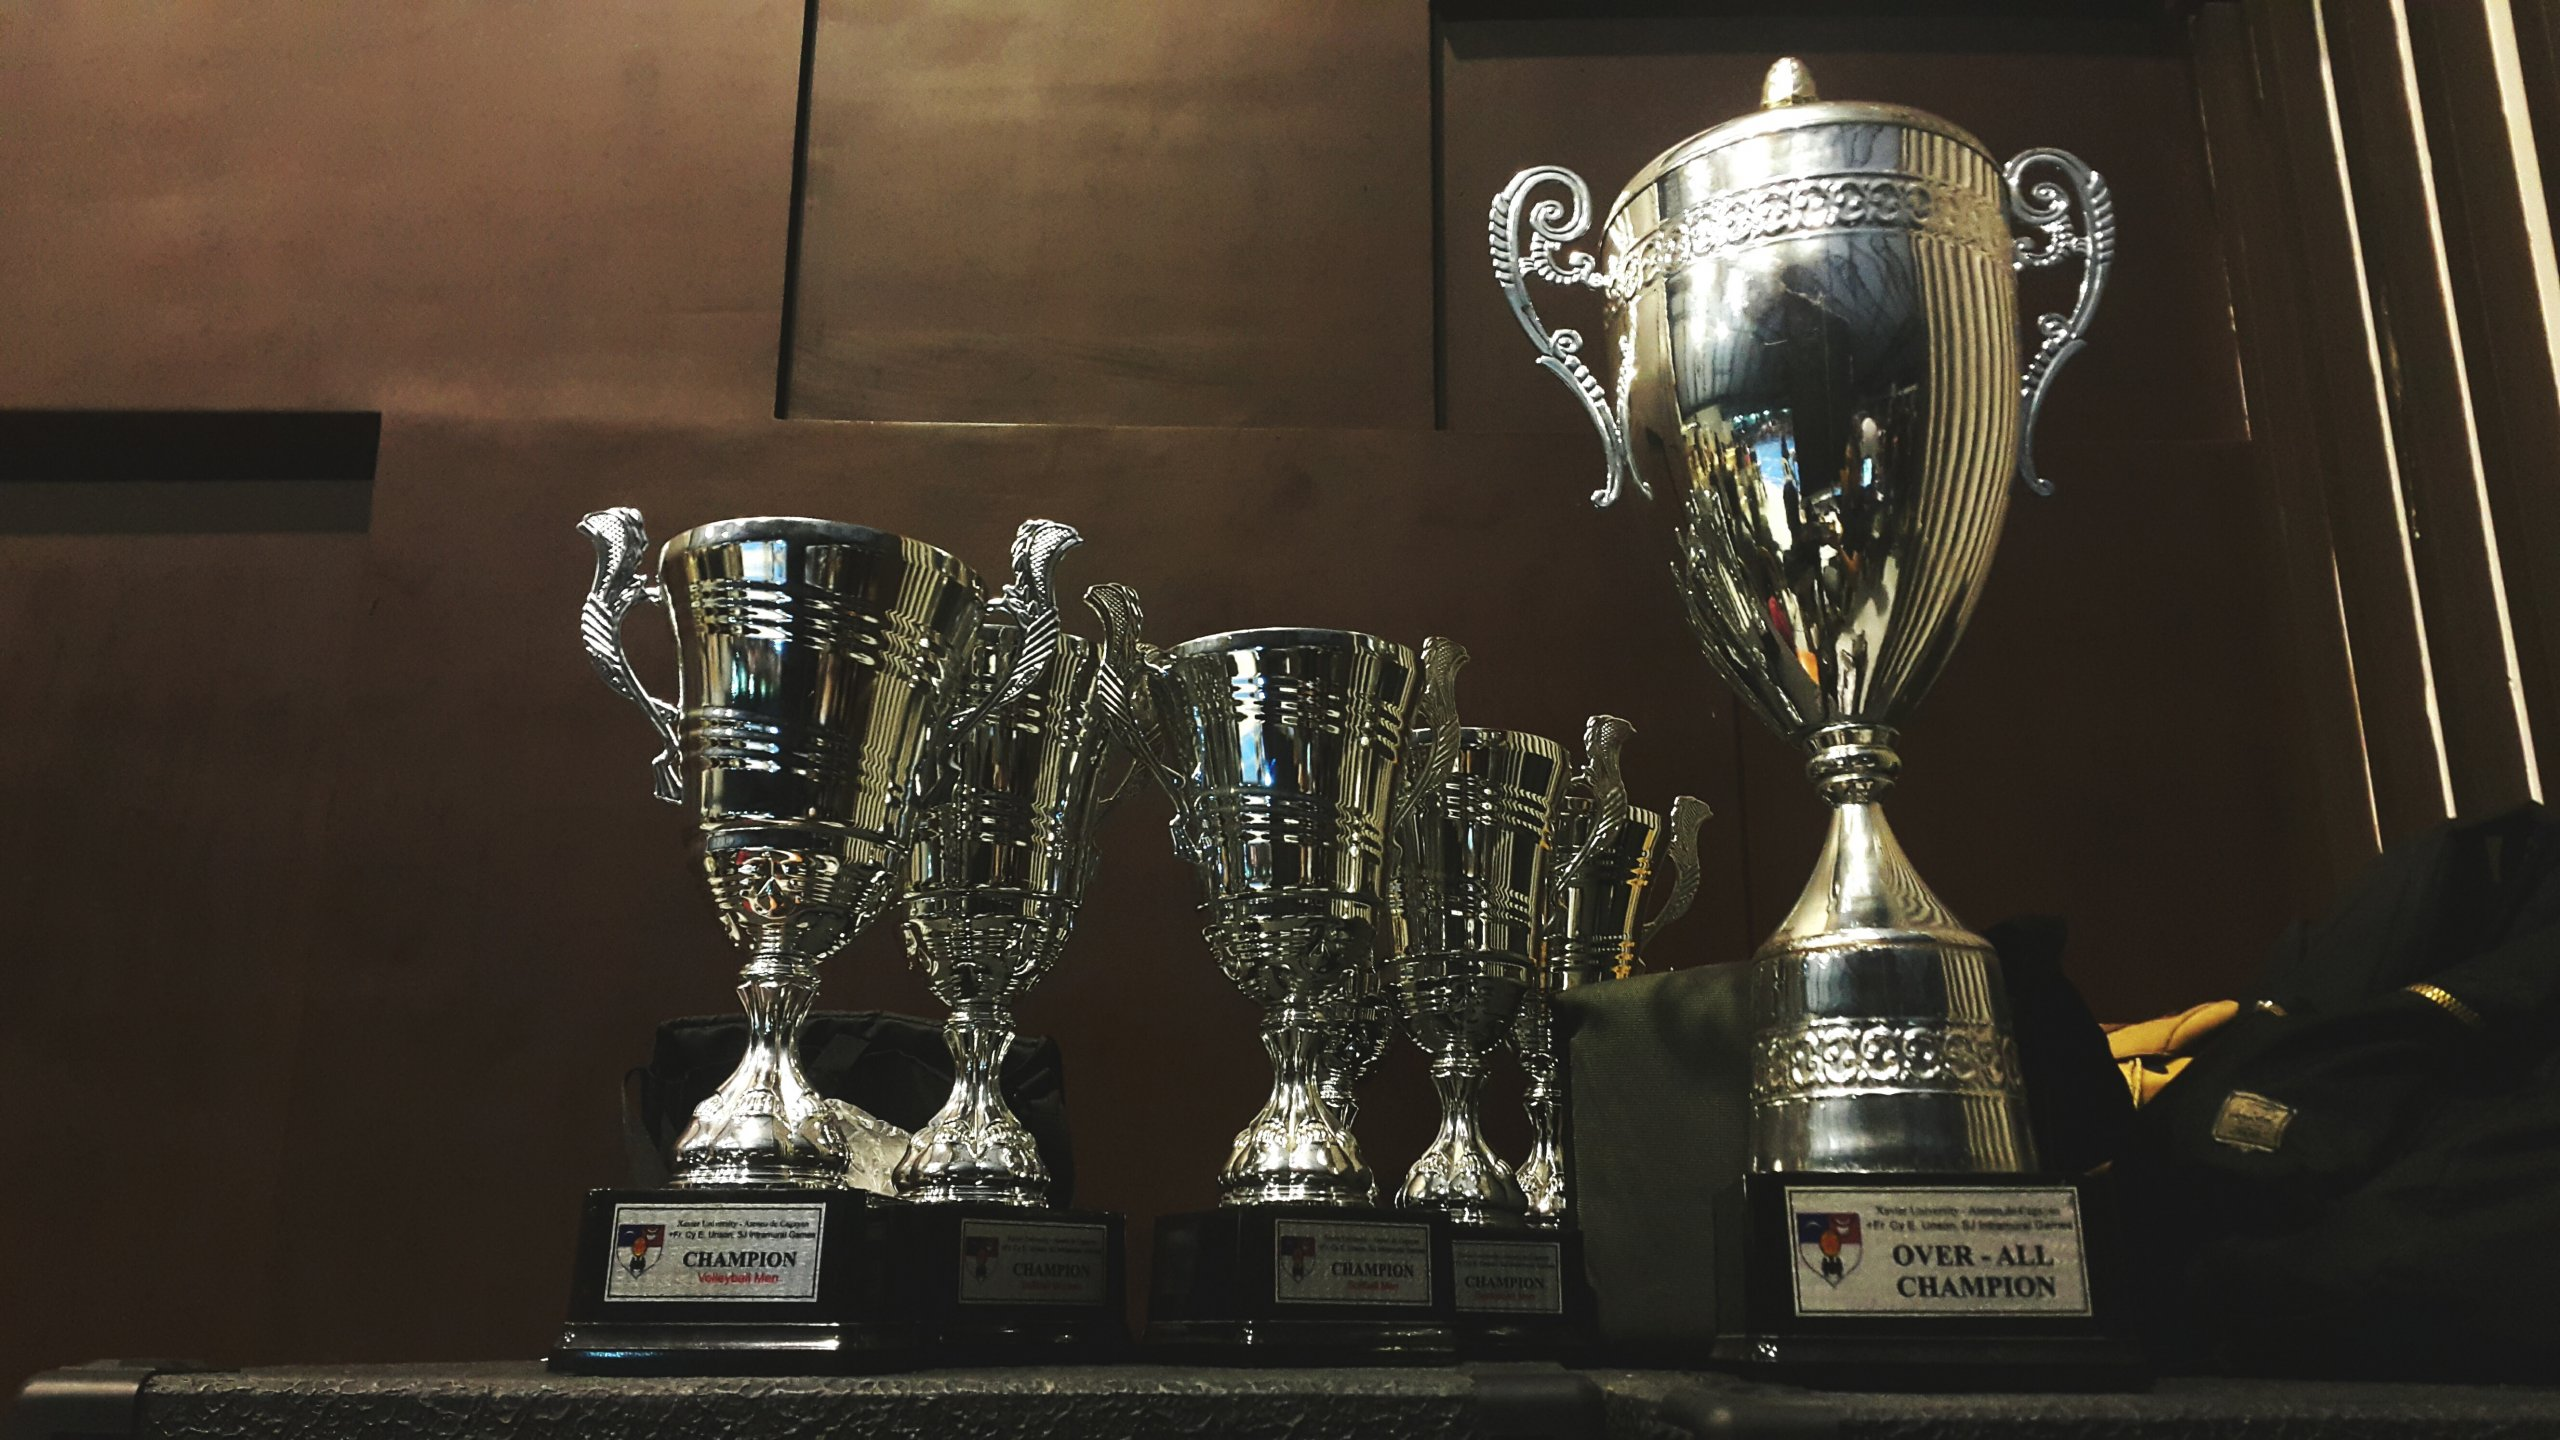 A collection of silver trophies